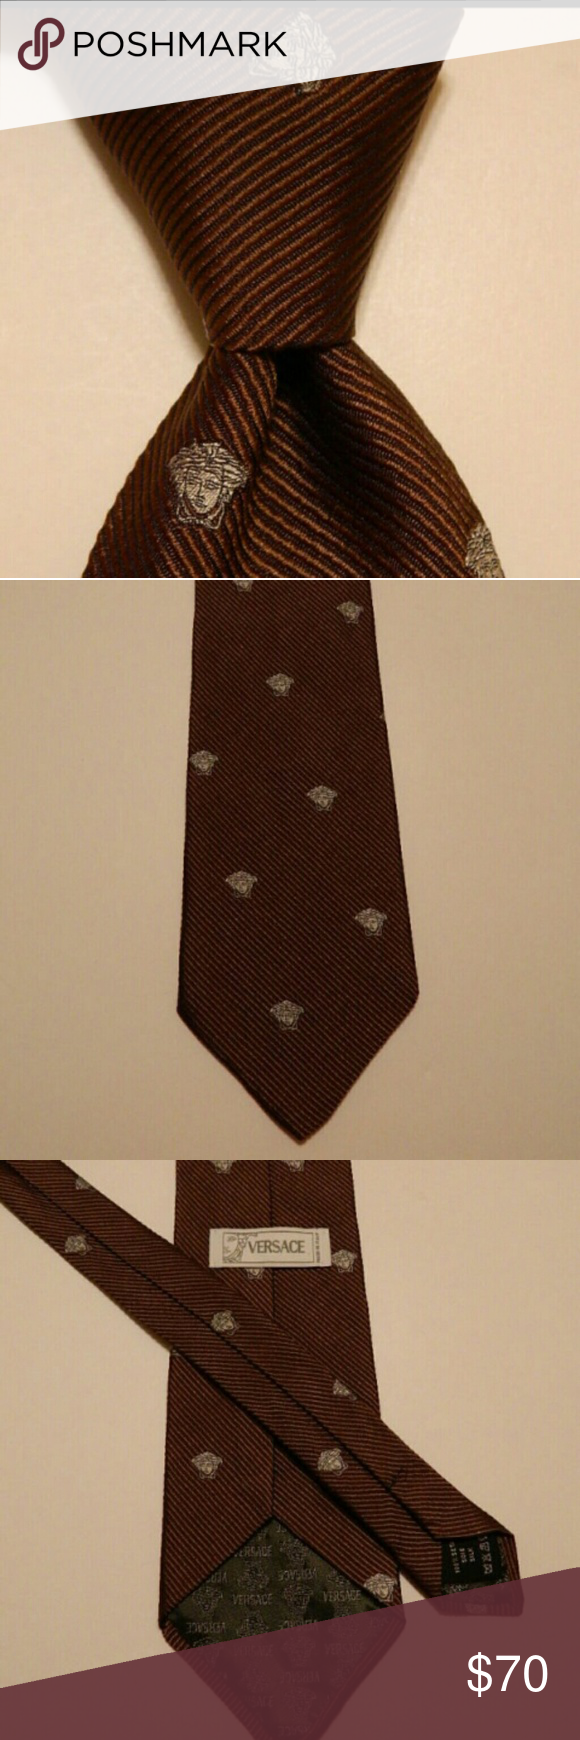 """GIANNI VERSACE Necktie MEDUSA HEAD Brown EUC GIANNI VERSACE Men's 100% Silk Necktie ITALY Luxury MEDUSA HEAD Brown/Gray EUC  Brand: Gianni Versace Style: Neck Tie Color: Brown/Gray Material: 100% Silk Attachment: Tied Length: Classic 59 1/4"""" Width: Classic 3 3/4"""" Pattern: Novelty (Medusa Head) & Textured Stripes Country/Region of Manufacturer: Italy Condition:Excellent Used Condition GIANNI VERSACE  Accessories Ties"""